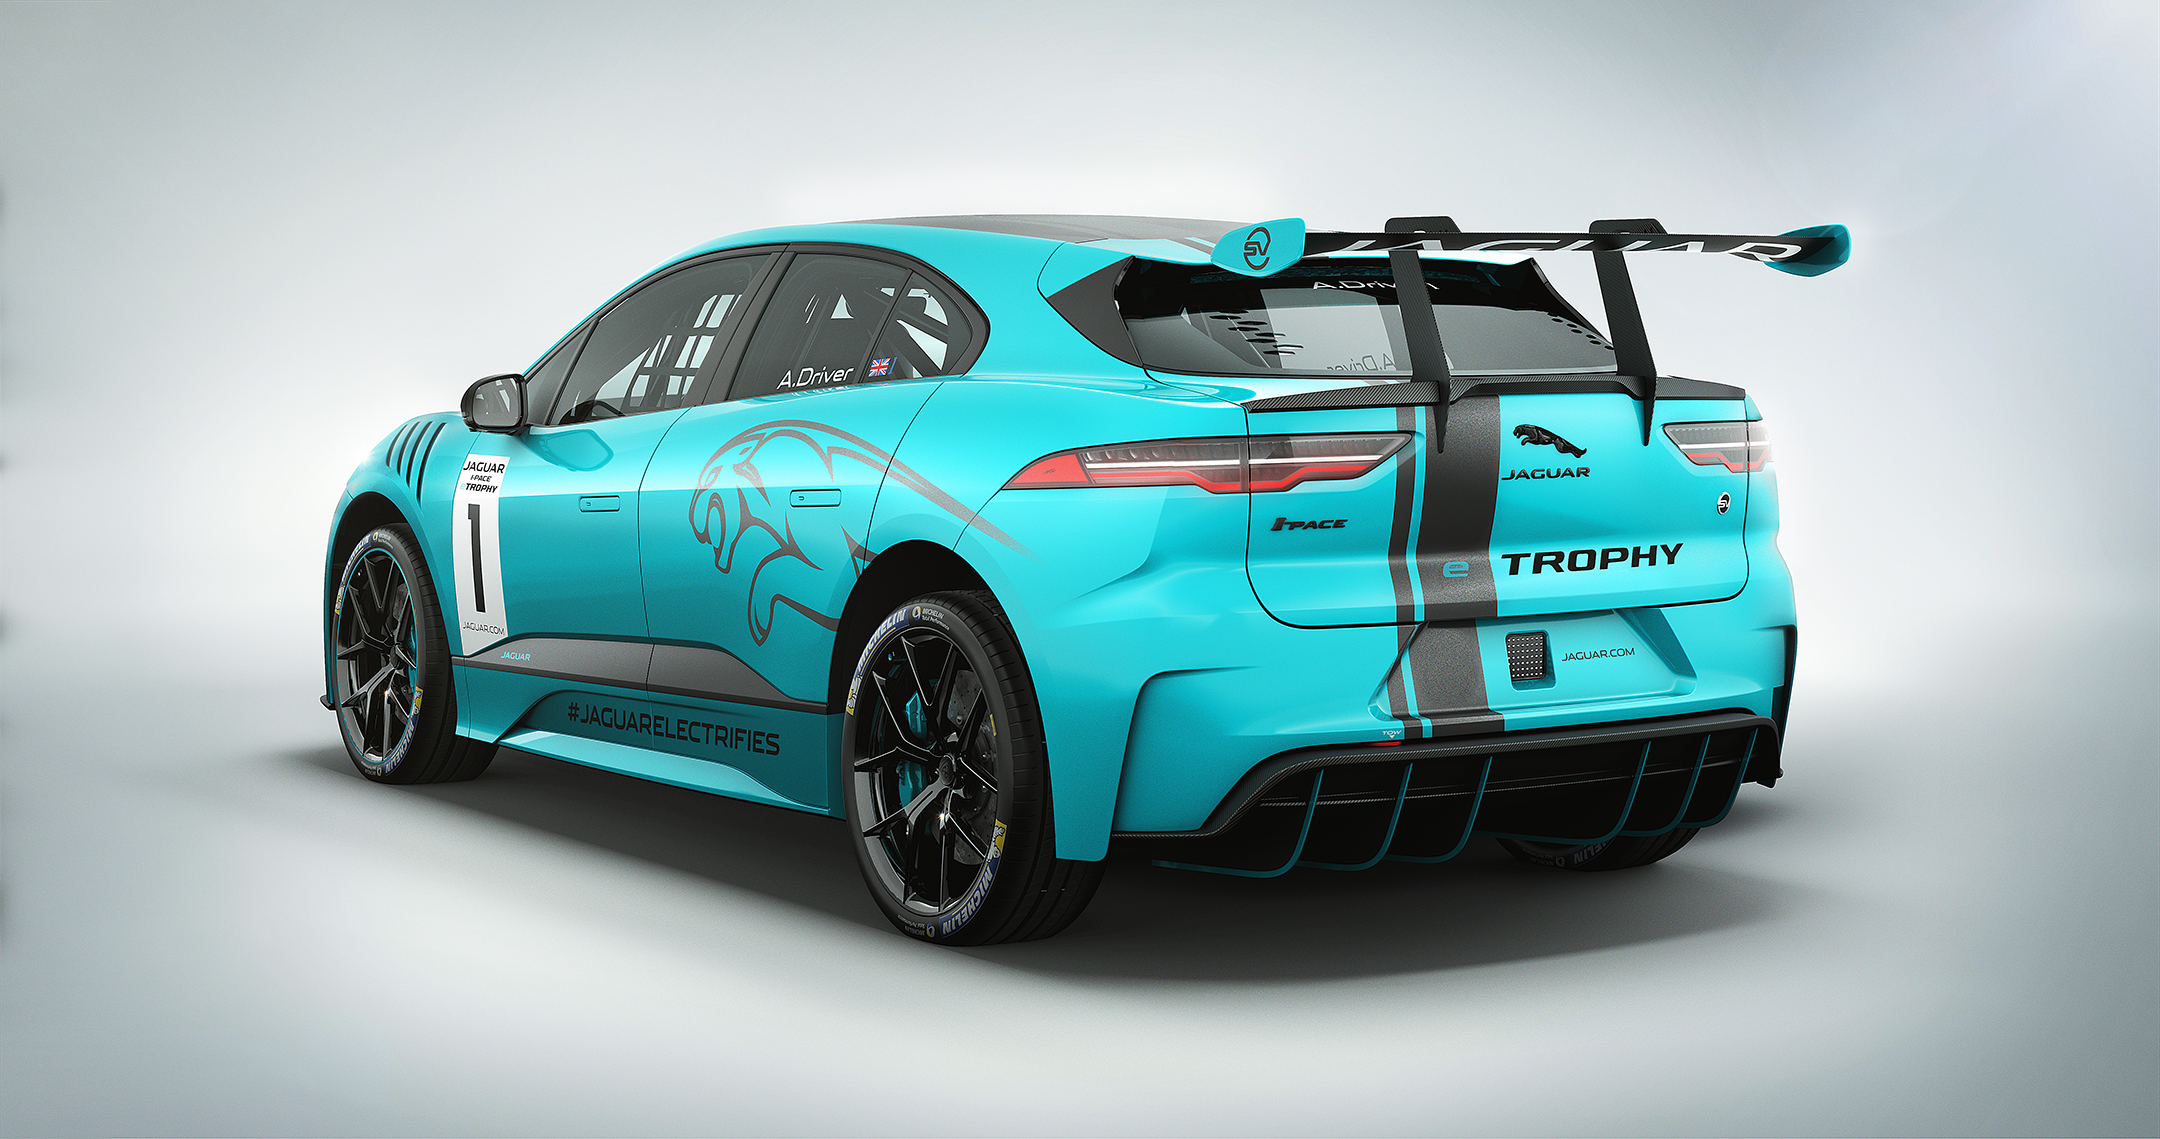 Jaguar I-PACE eTROPHY - 2017 - rear side-face / profil arrière